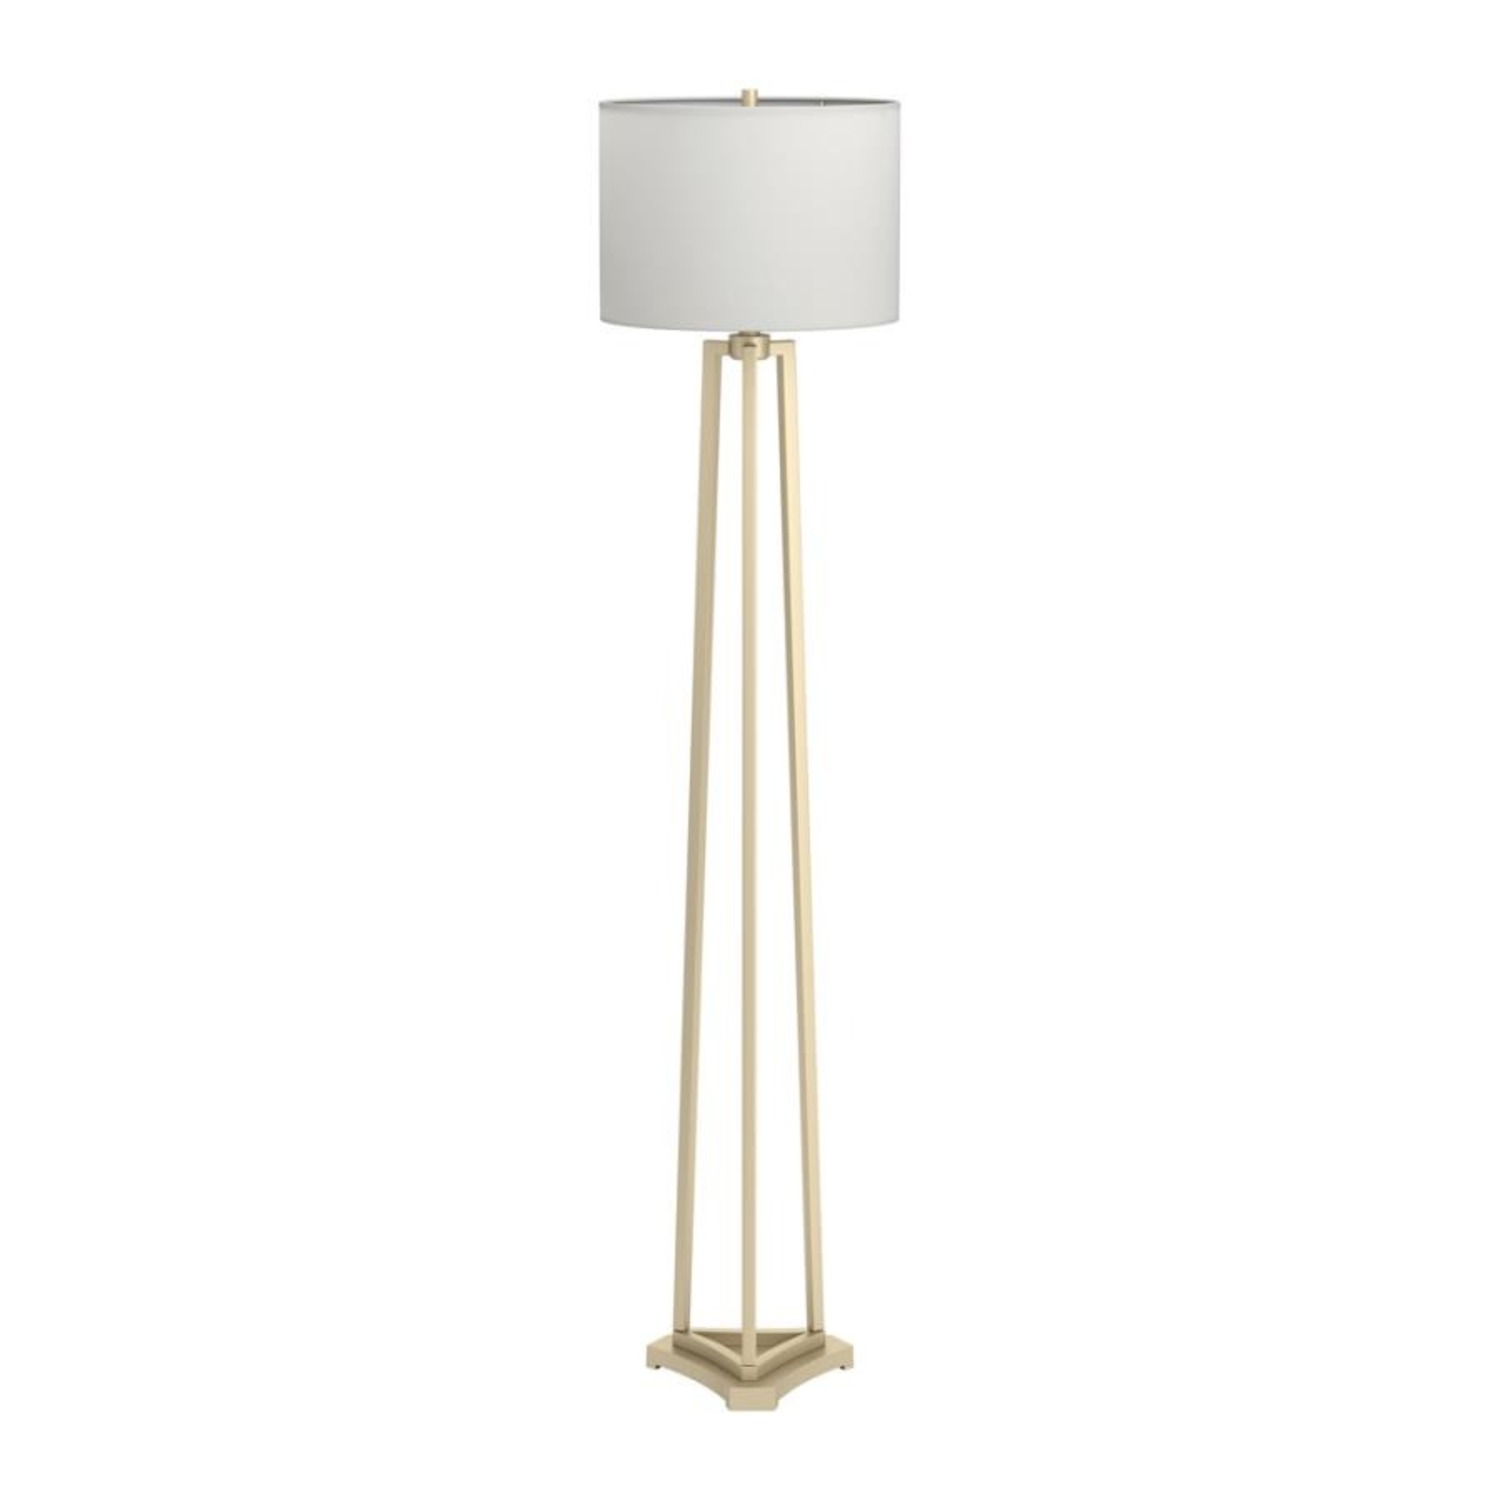 Contemporary Floor Lamp In Metal Gold Finish - image-2